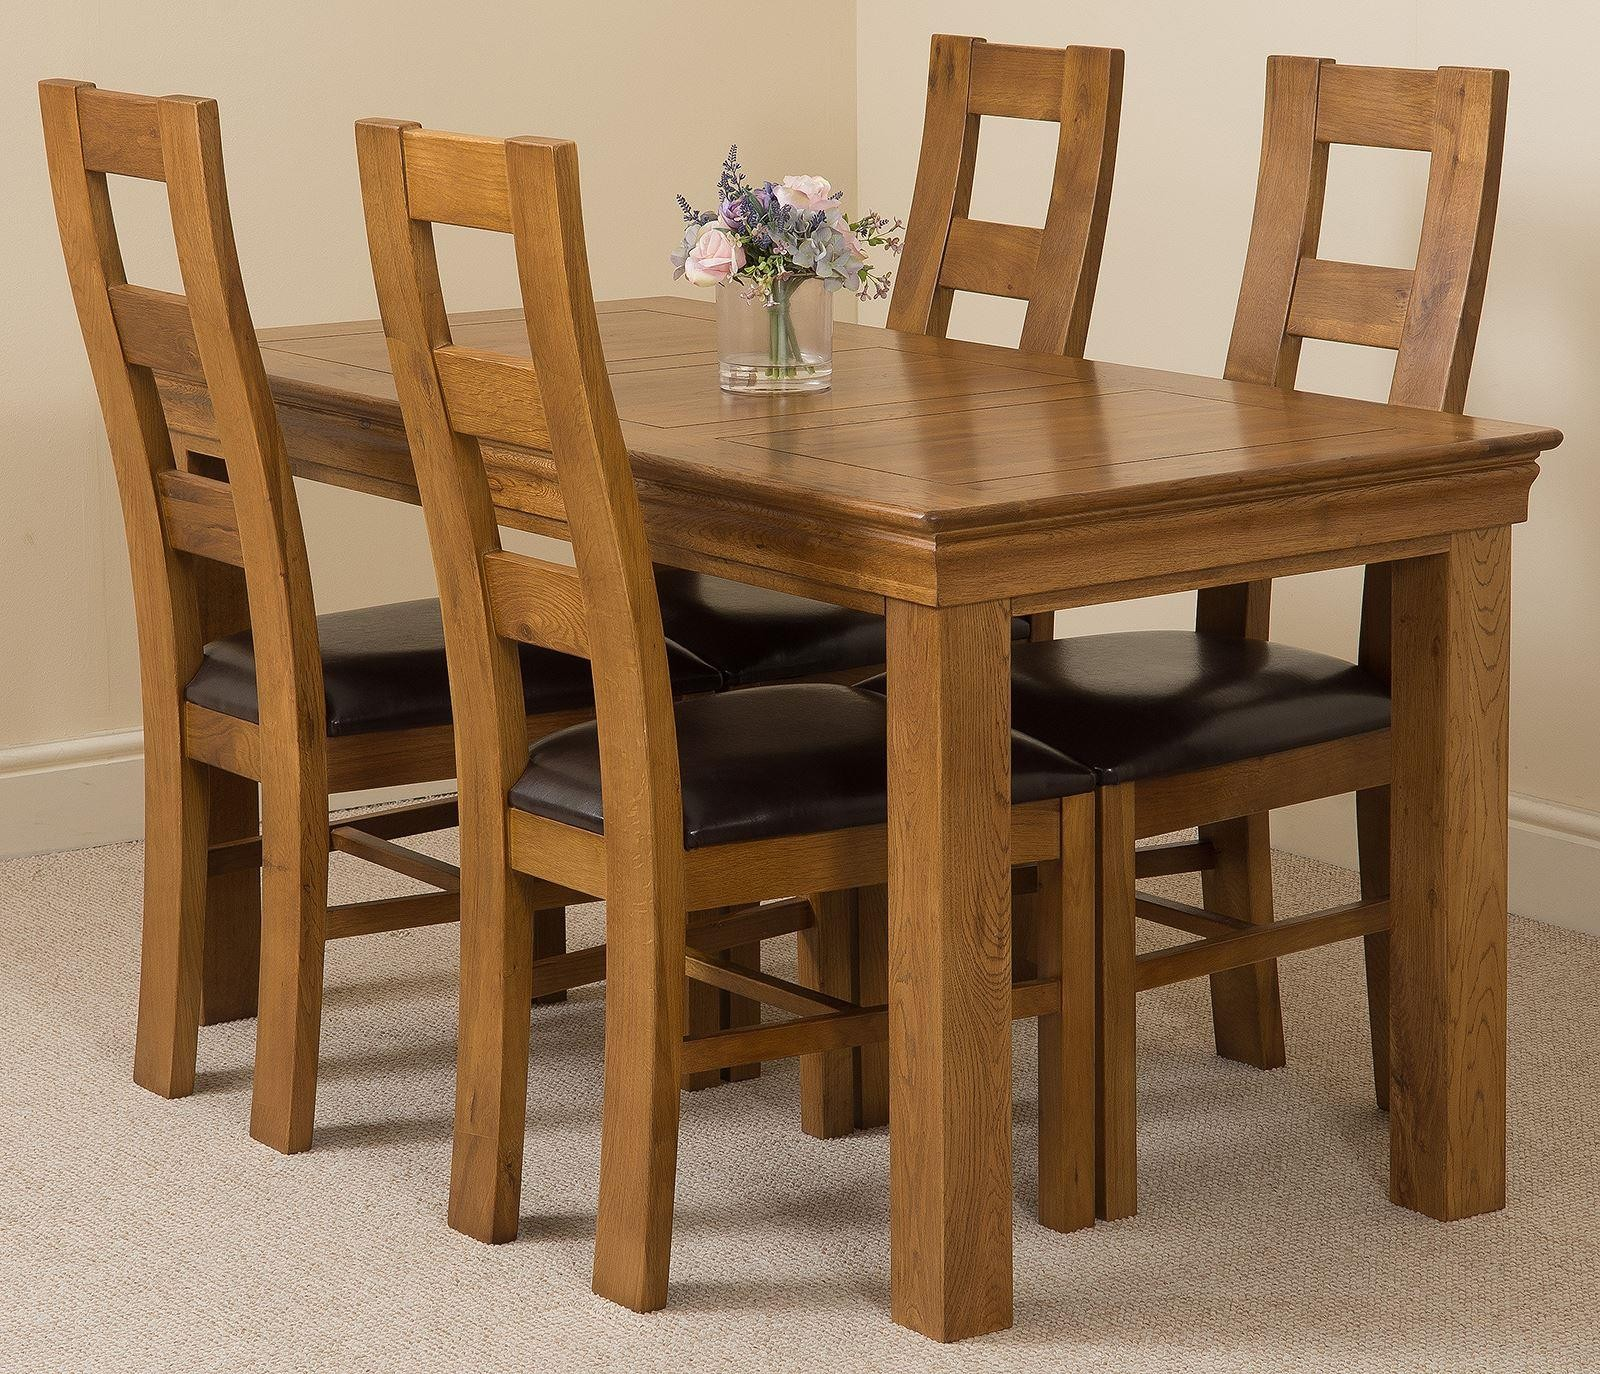 French Chateau Rustic Oak Dining Table With 4 Brown Yale Dining Chairs